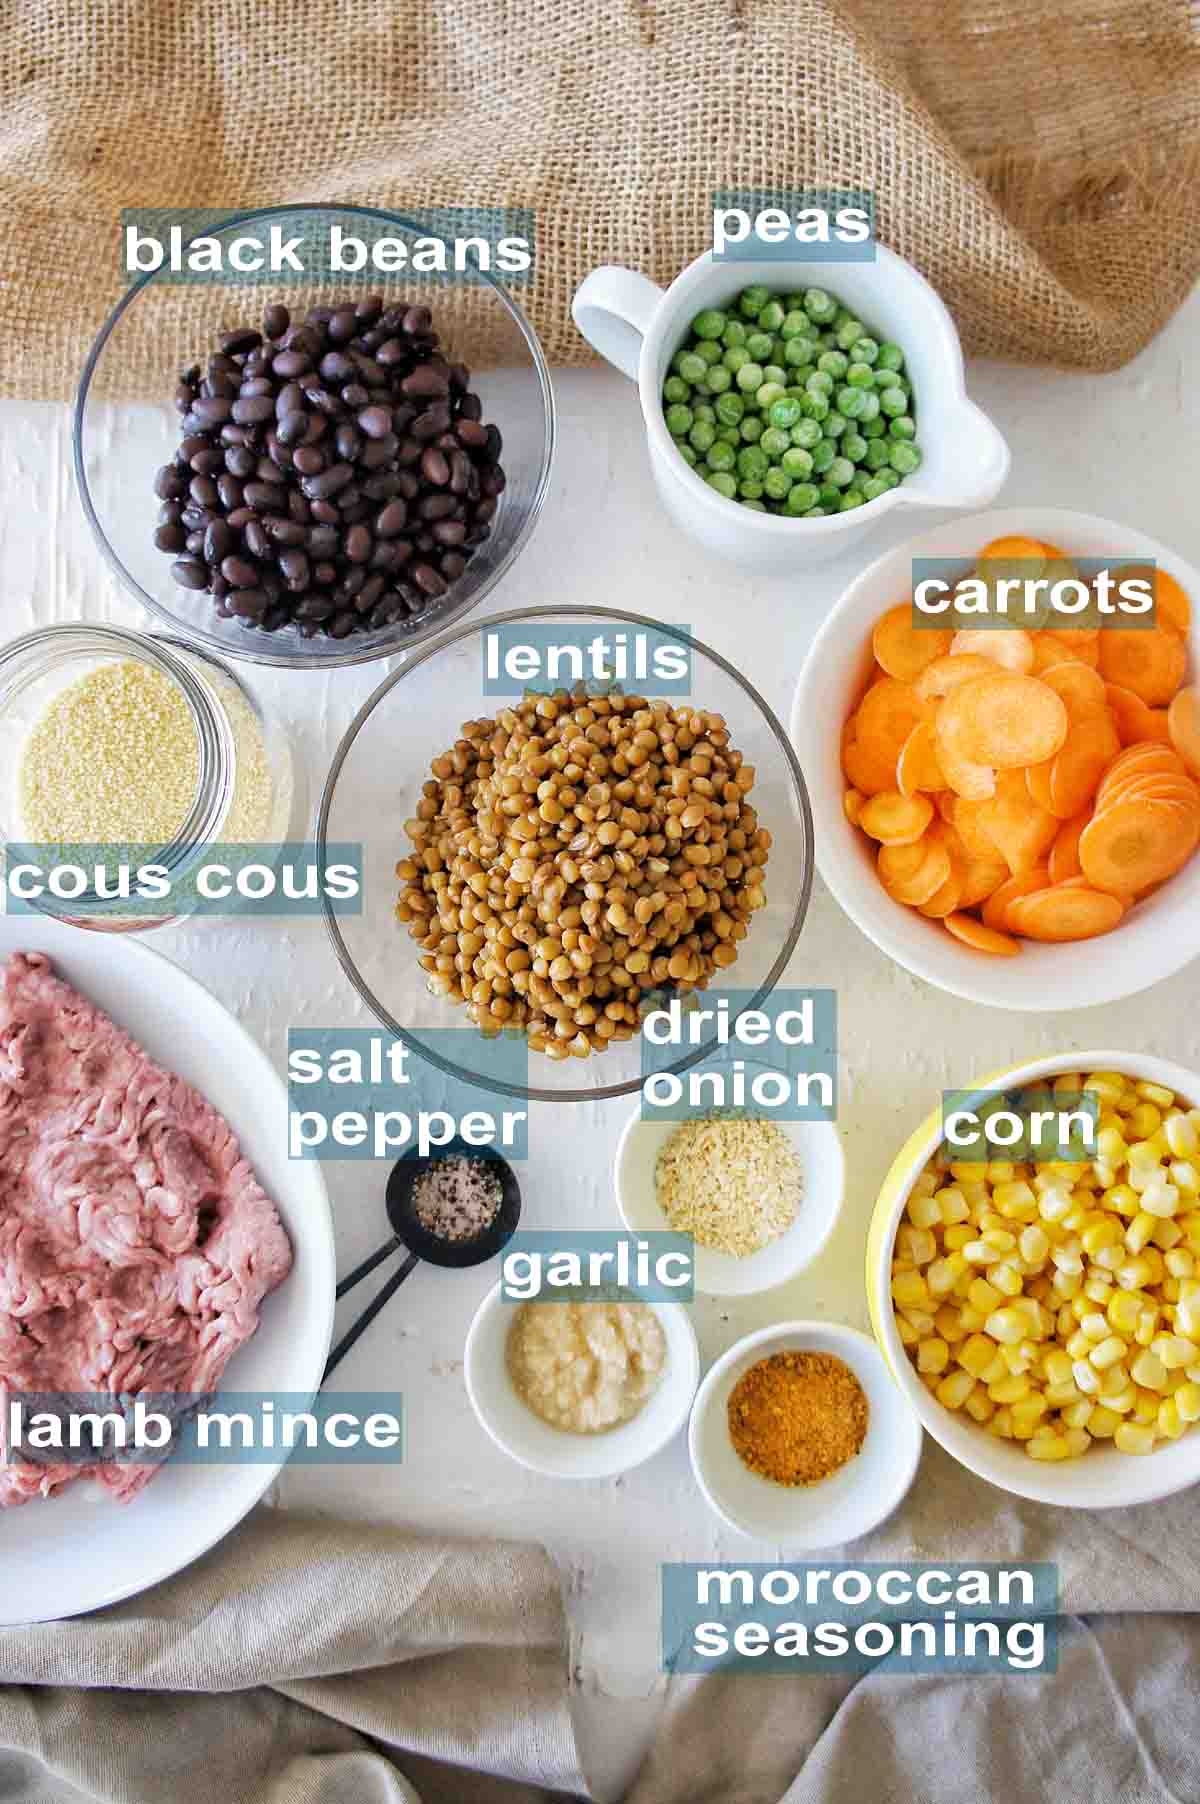 Ingredients set out to make moroccan lamb couscous with text overlay